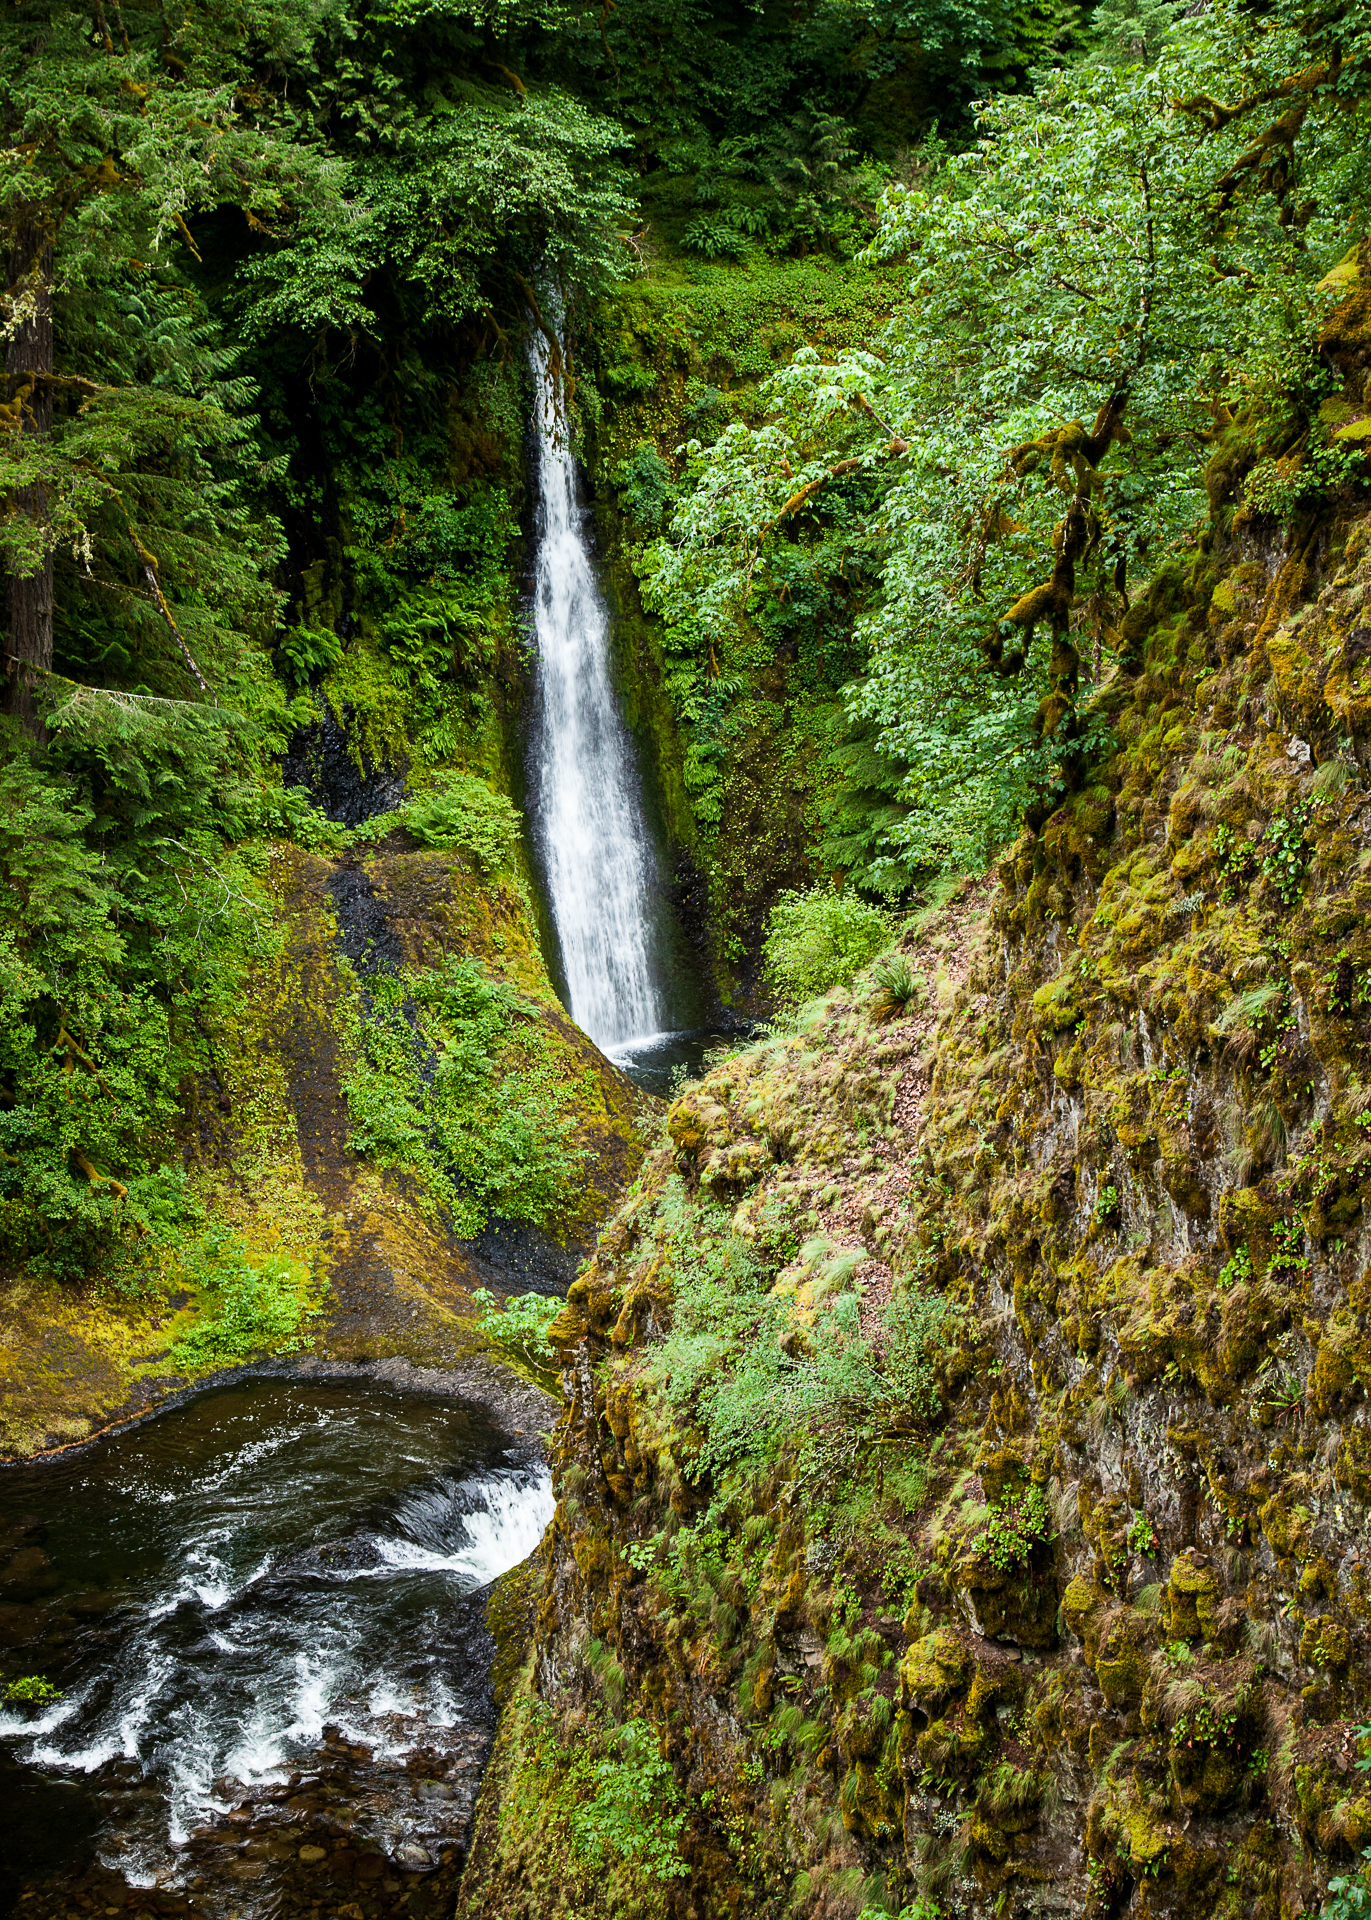 A slightly different view of Loowit Falls.